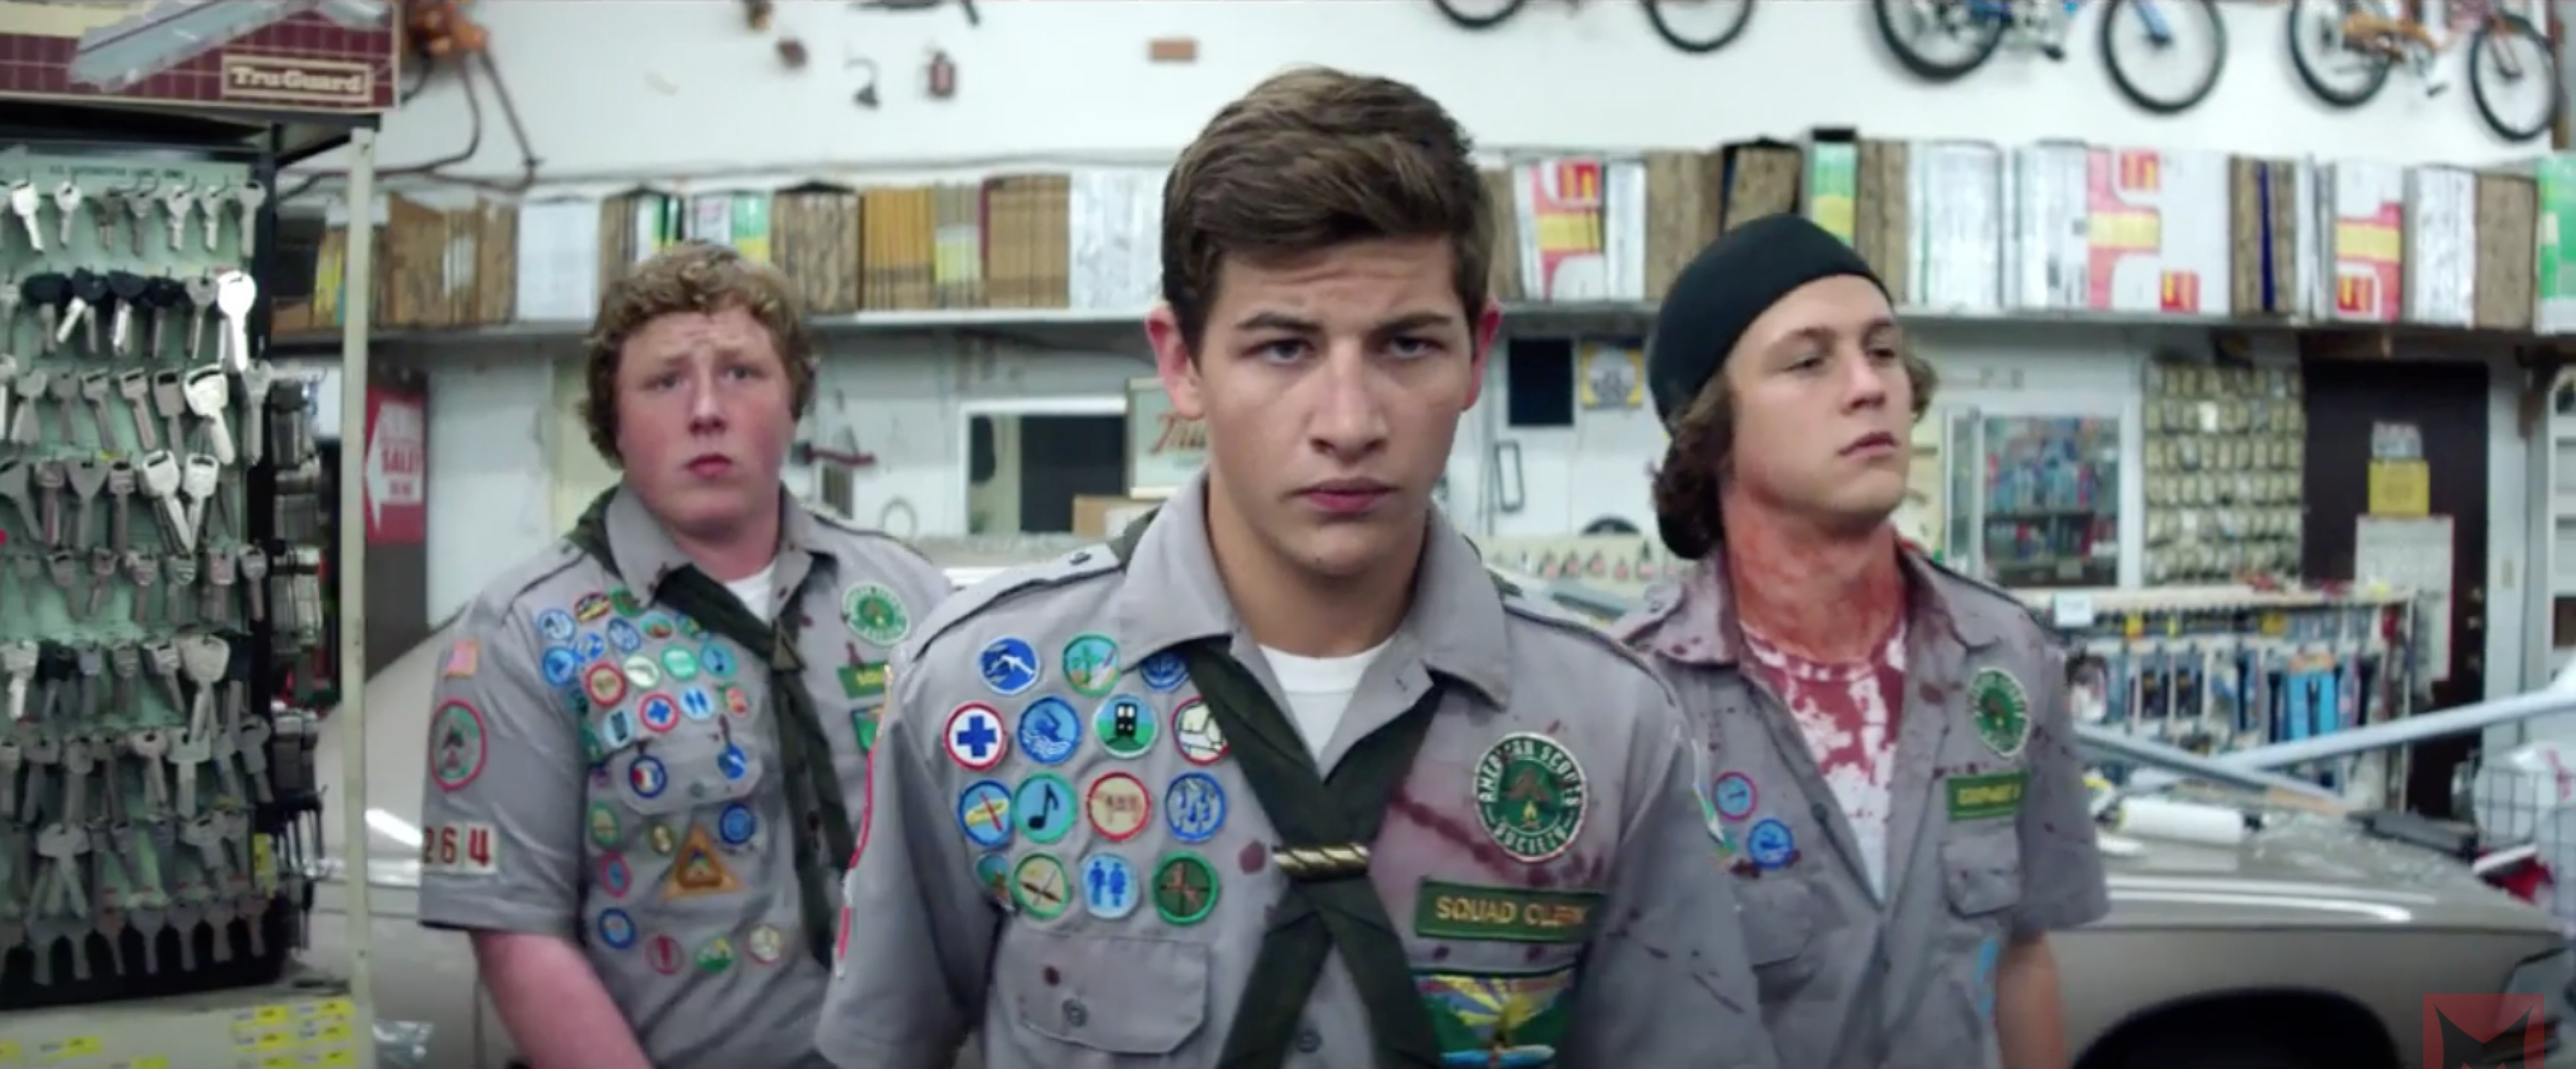 Scouts Guide to the Zombie Apocalypse Movie (2015)